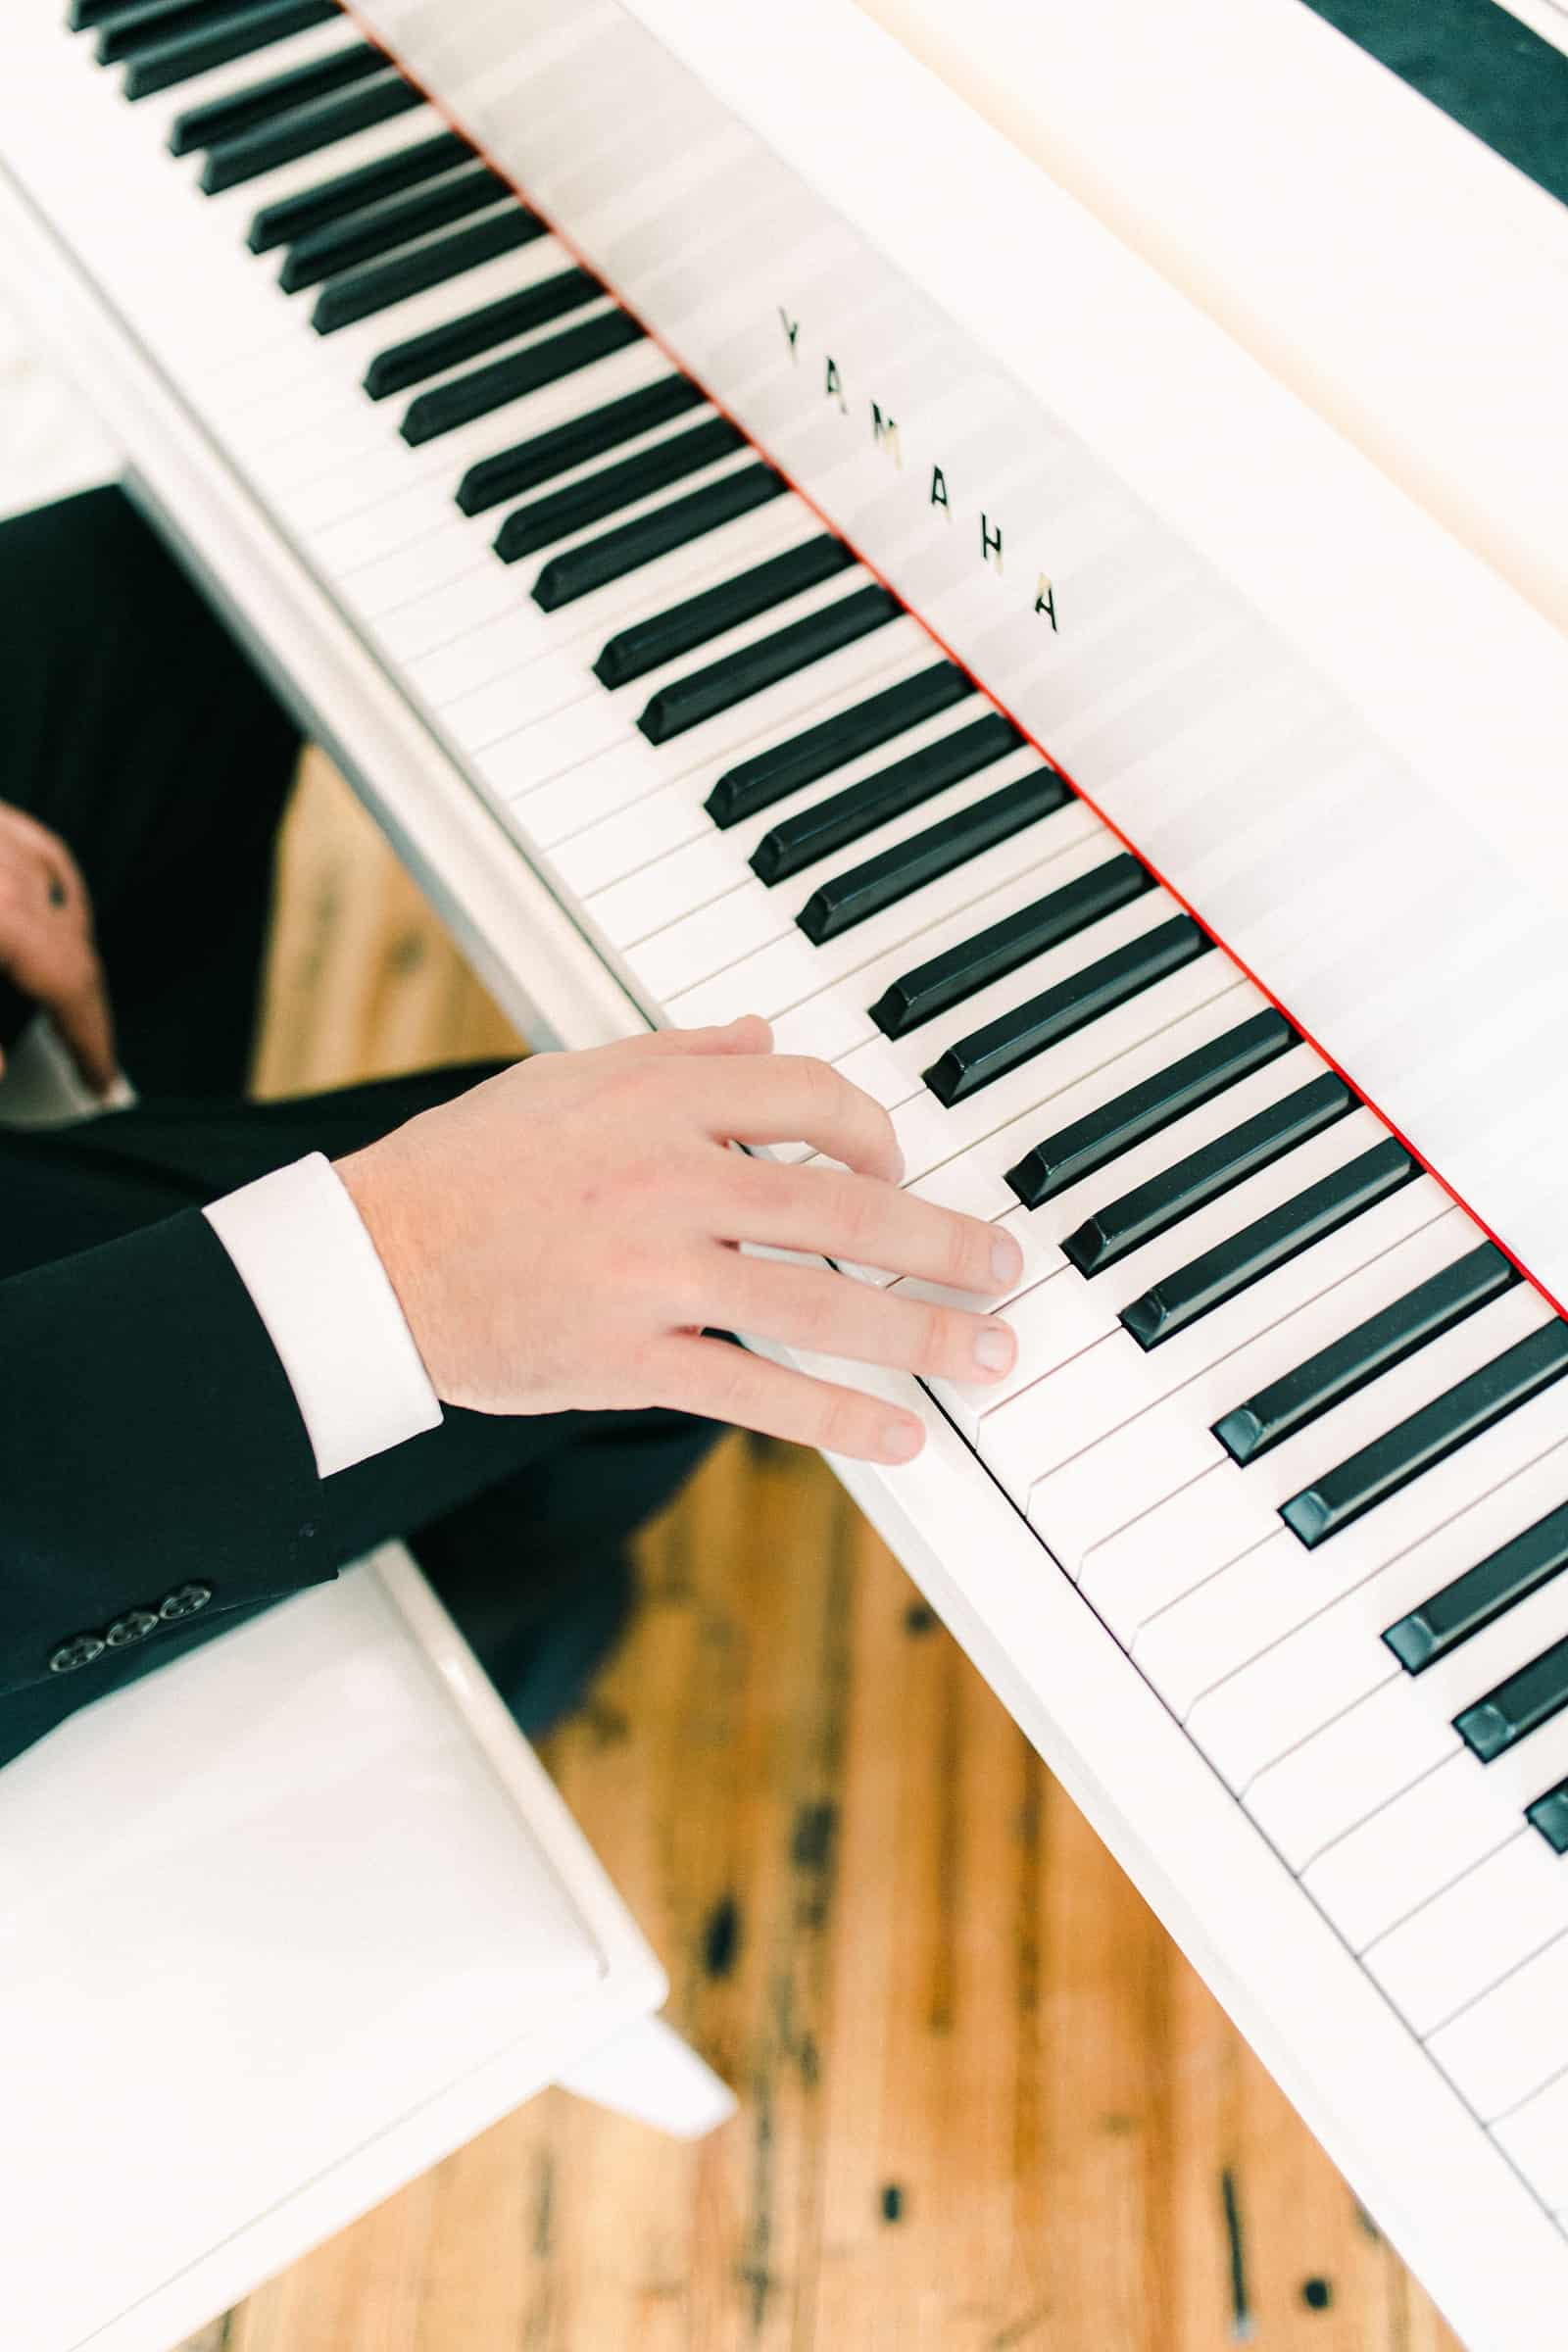 Groom serenades bride at the piano, special wedding song